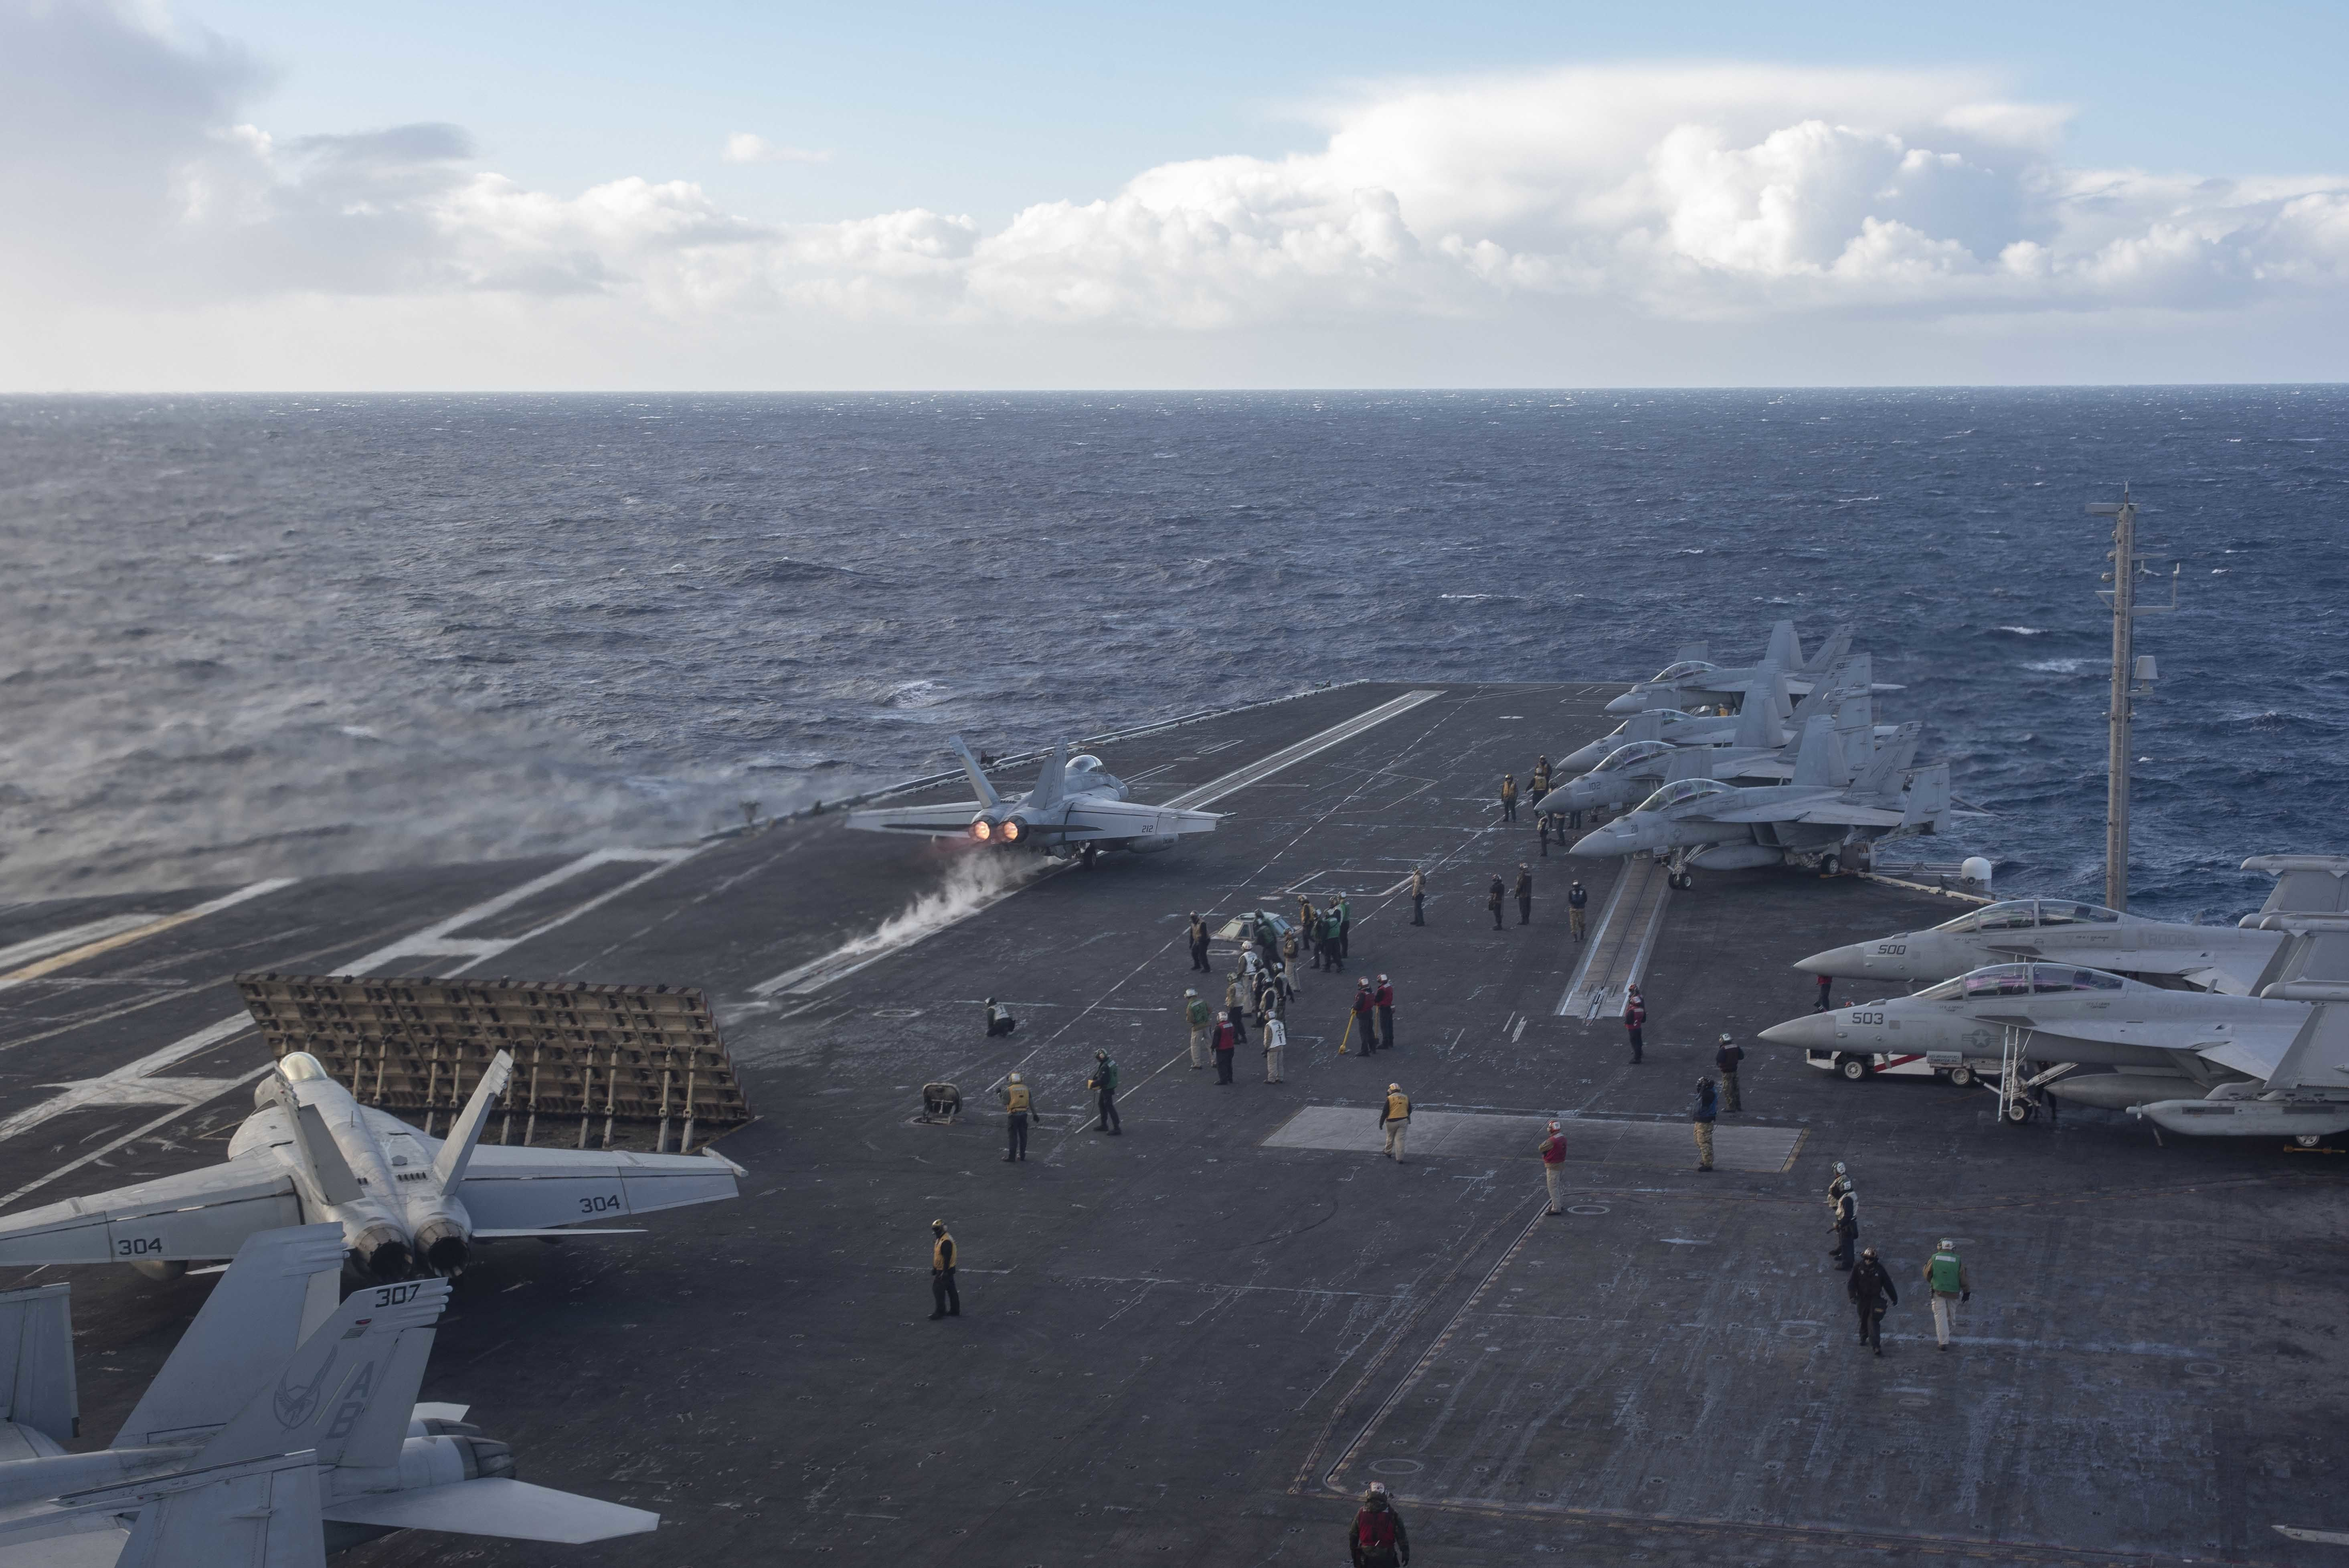 As It Begins Its Second Century, Is the Aircraft Carrier Obsolete?